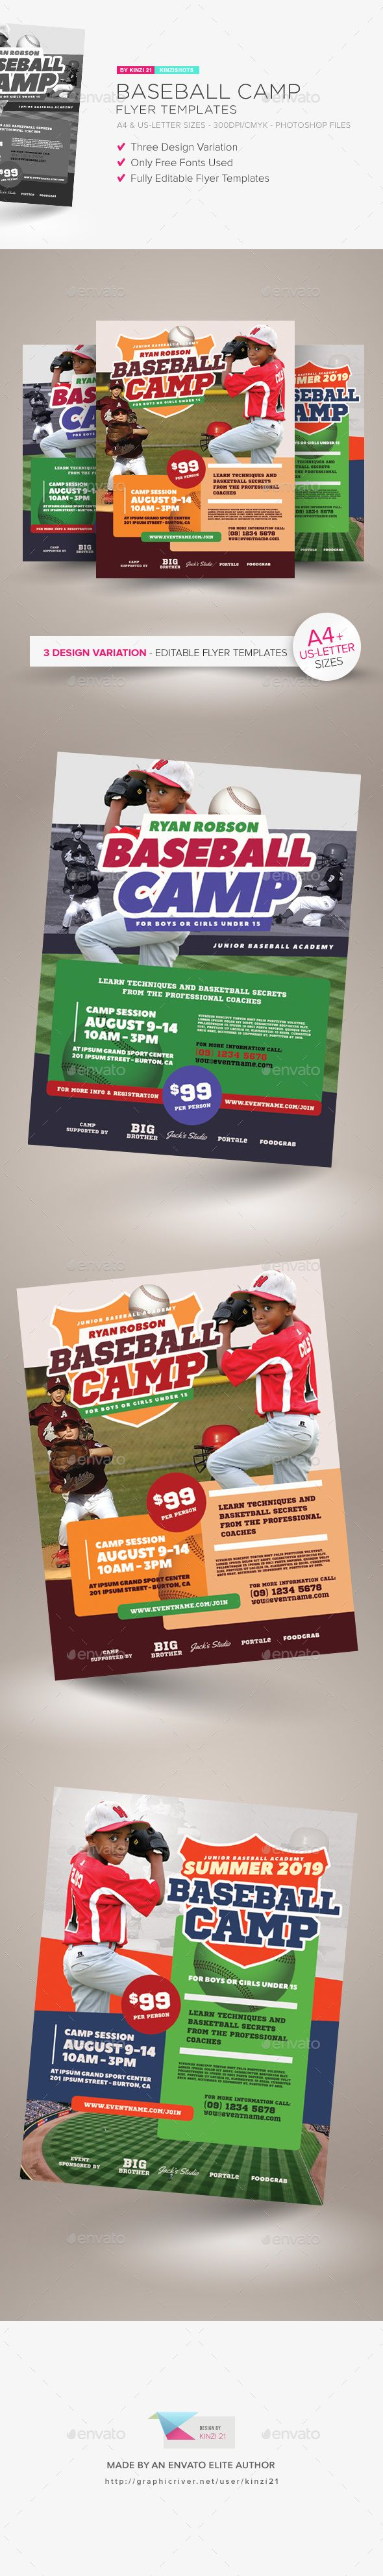 Baseball Camp Flyer Templates Flyer Template Flyer Baseball Camp